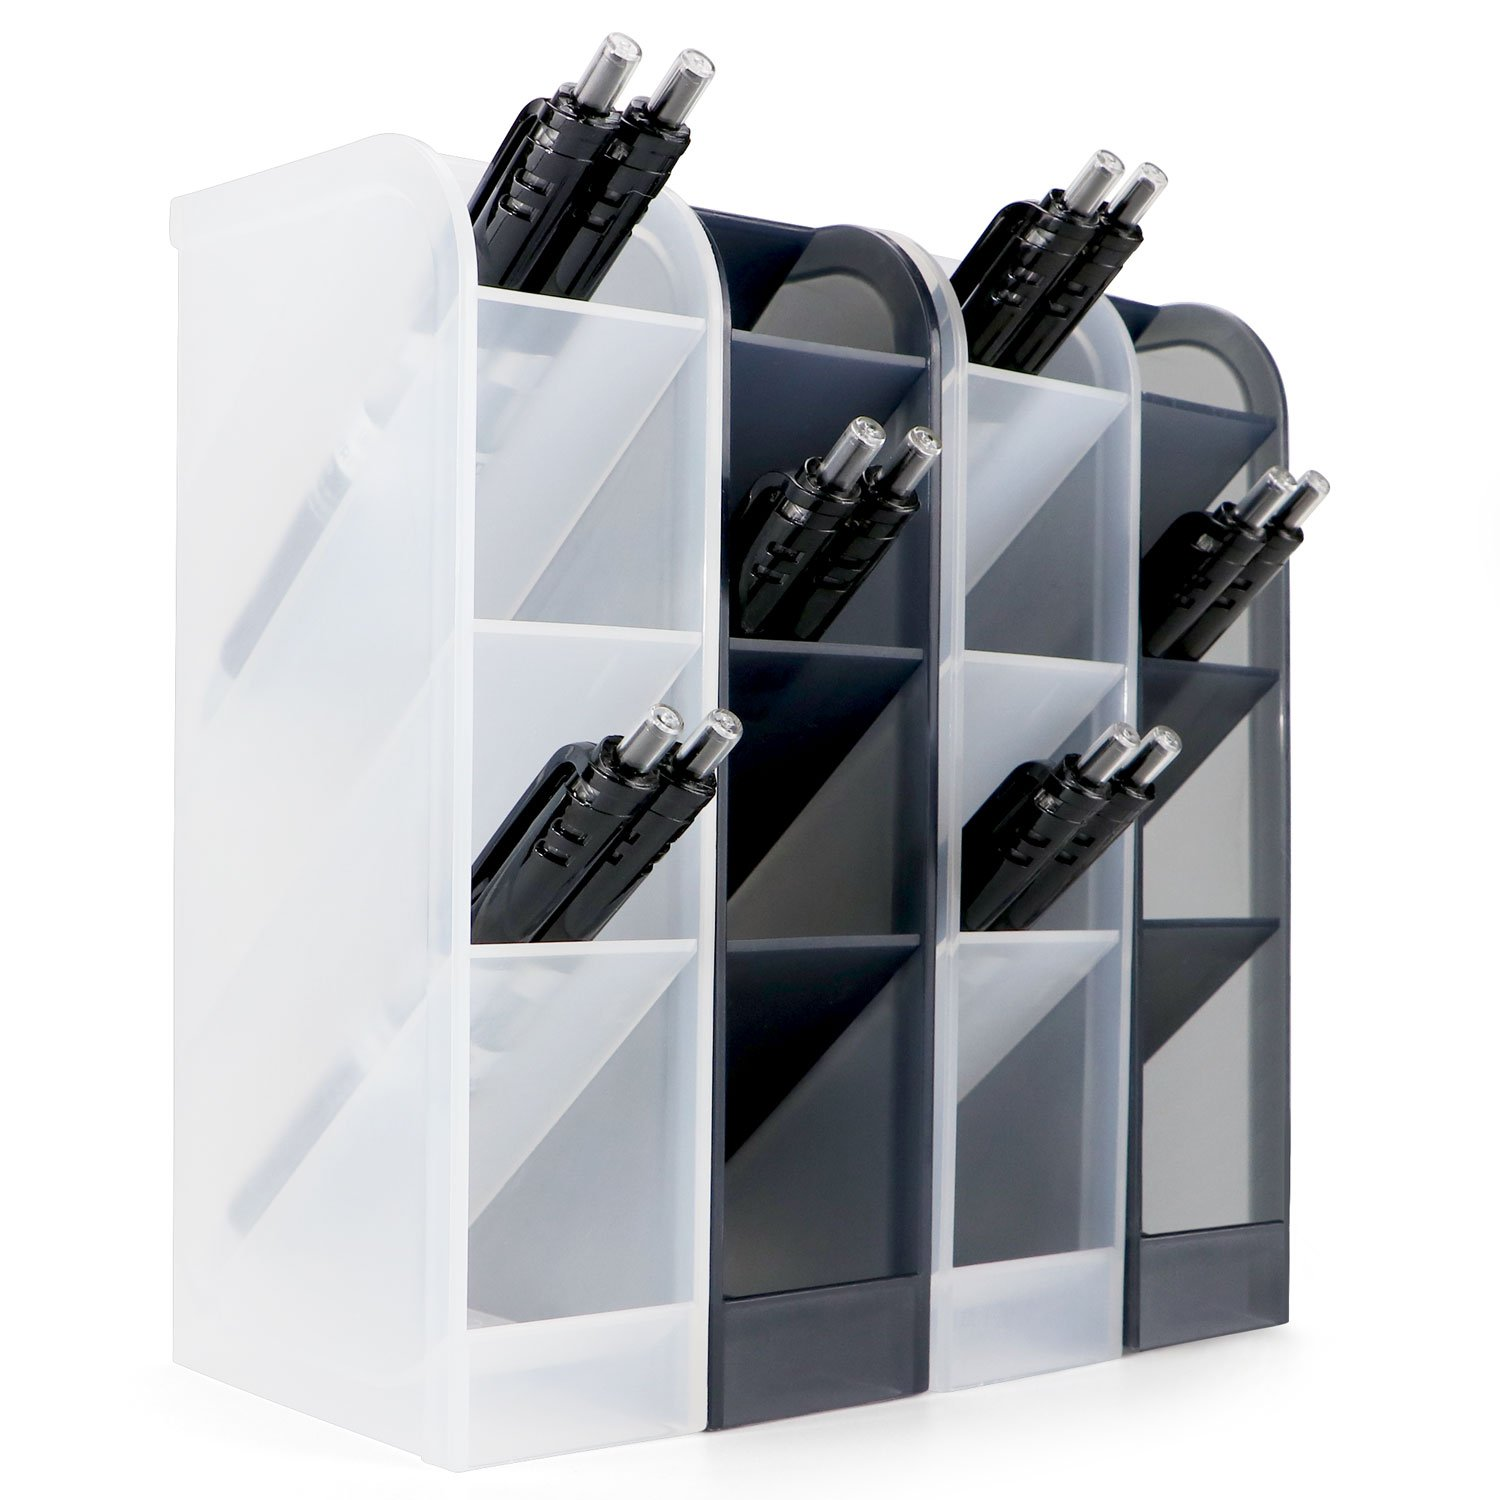 4 Pcs Desk Organizer- Pen Organizer Storage for Office, School, Home Supplies, Translucent Black & White Pen Storage Holder, Set of 4, 16 Compartments (4 Pcs)